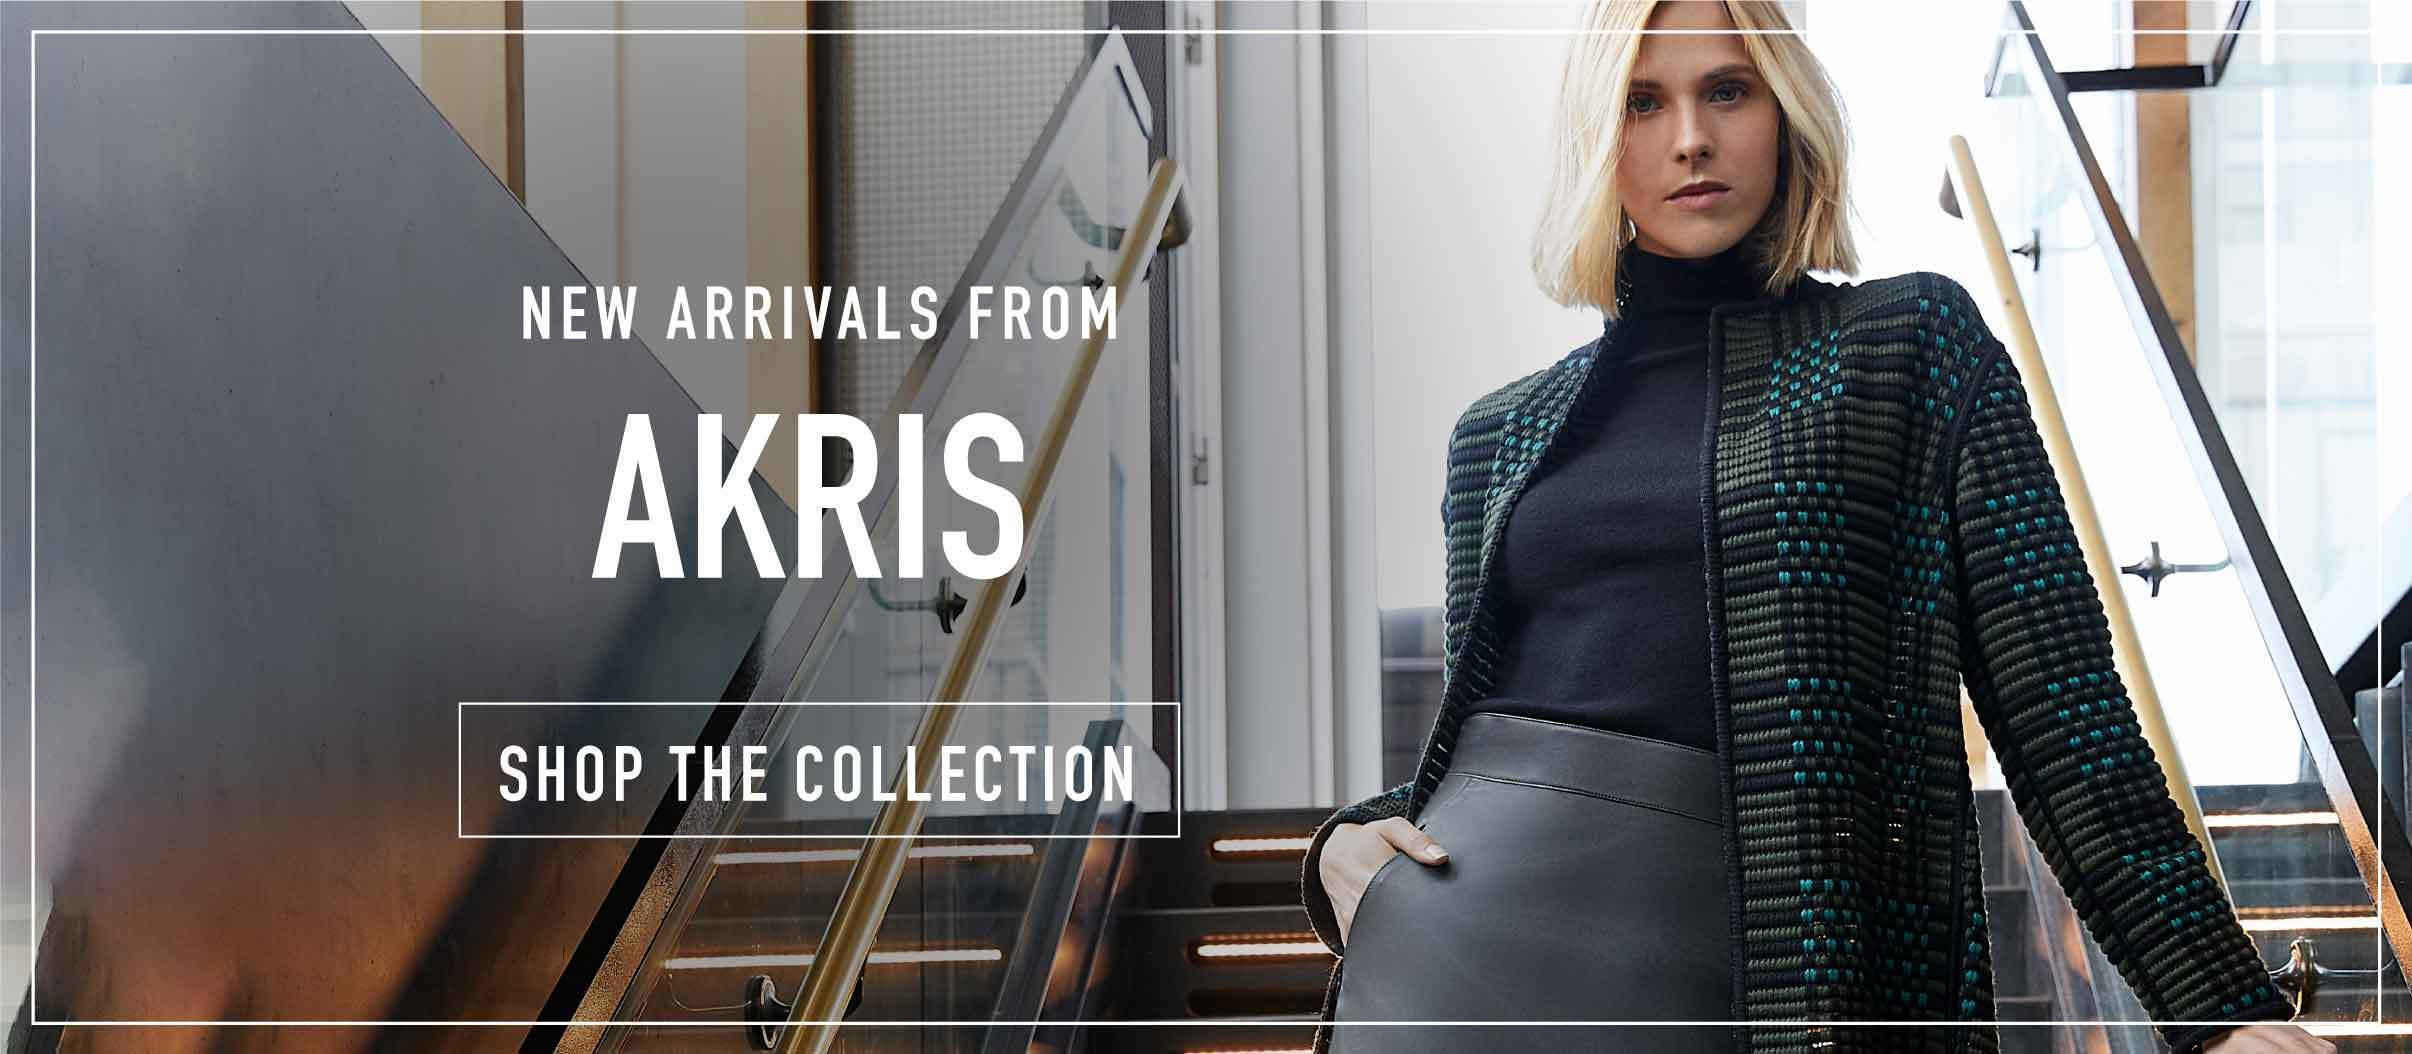 New Arrivals from Akris